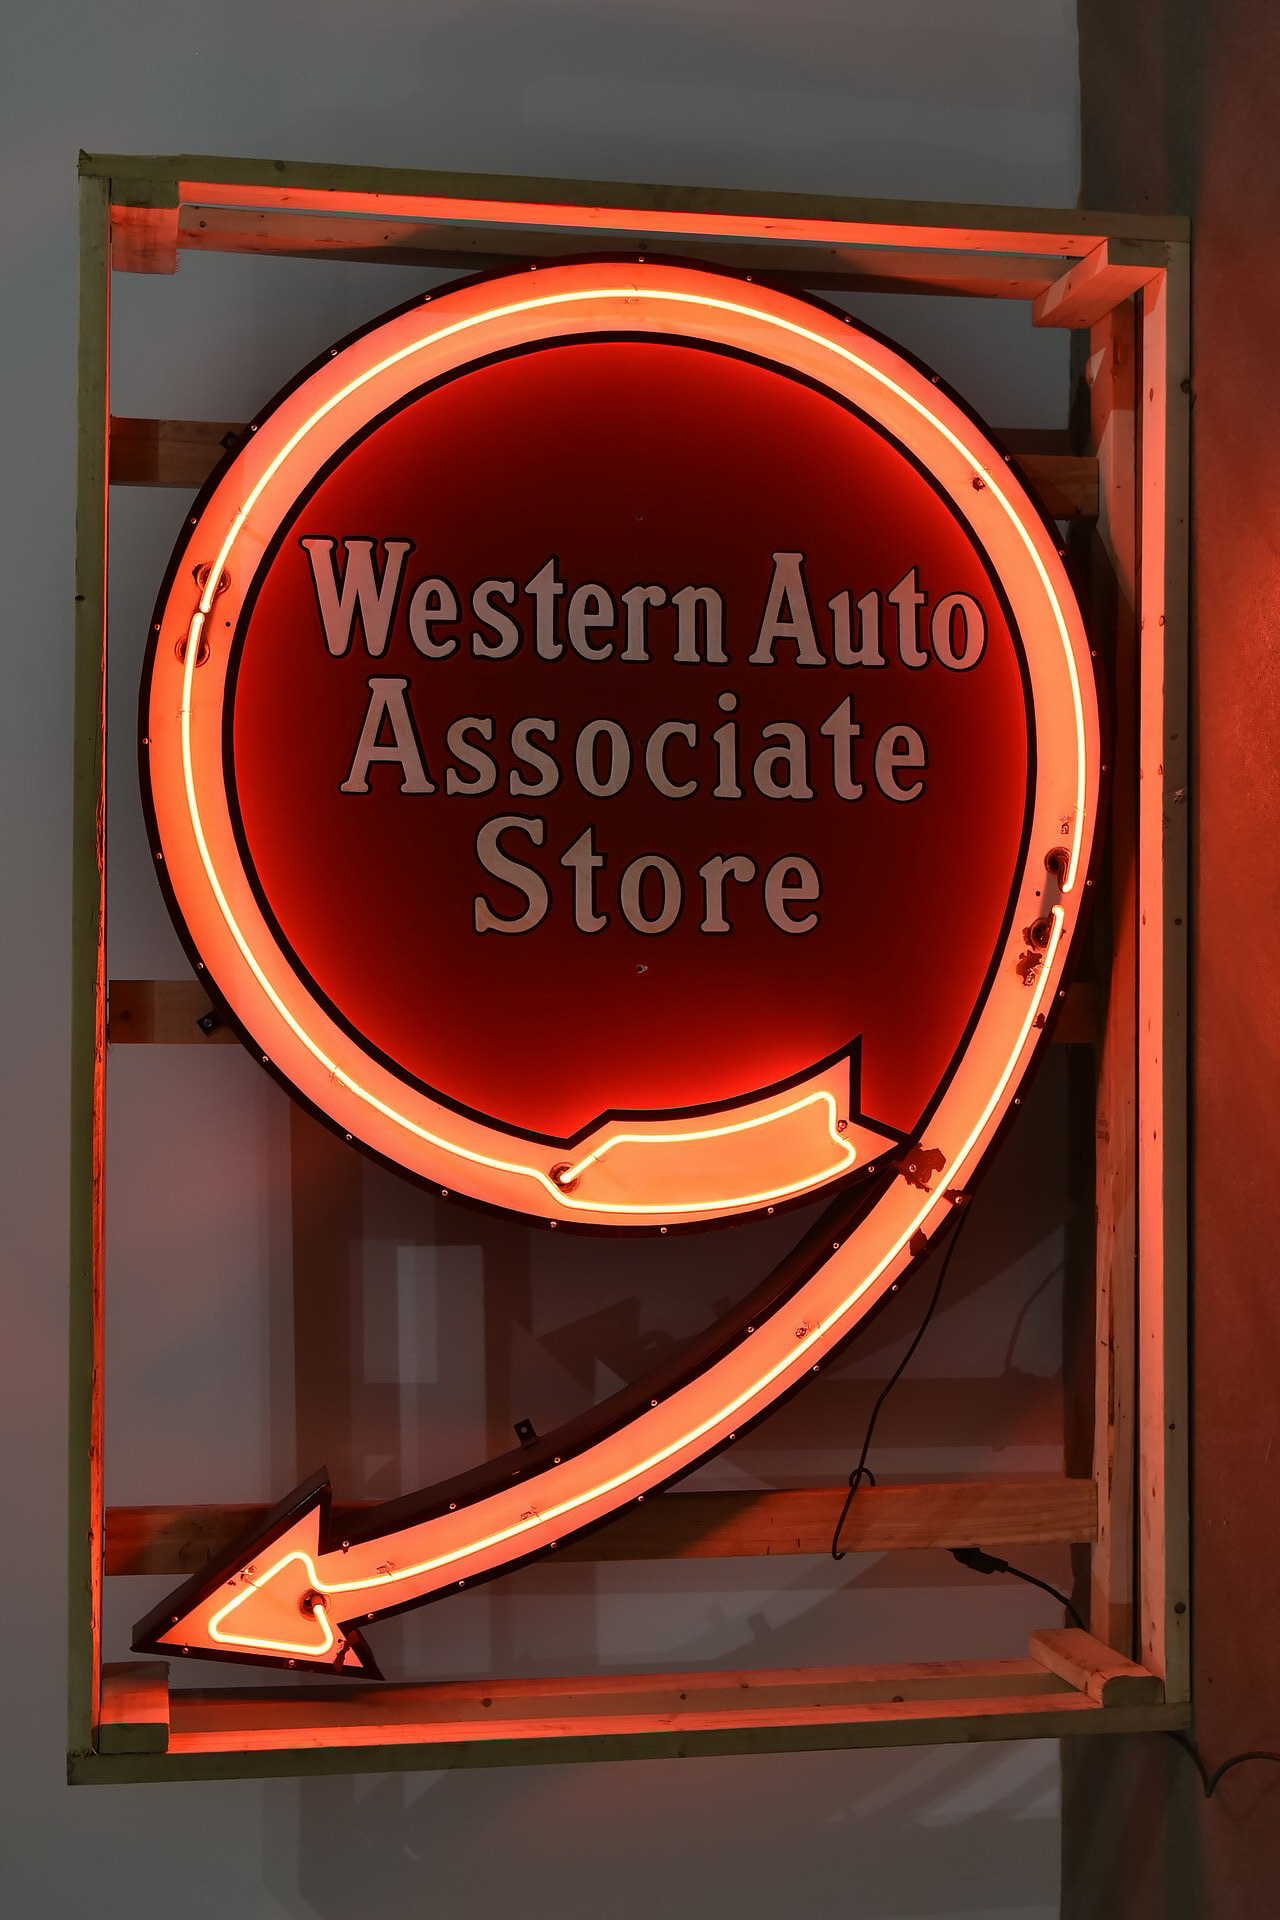 Western Auto Associate Store Porcelain Lighted Neon Can Sign